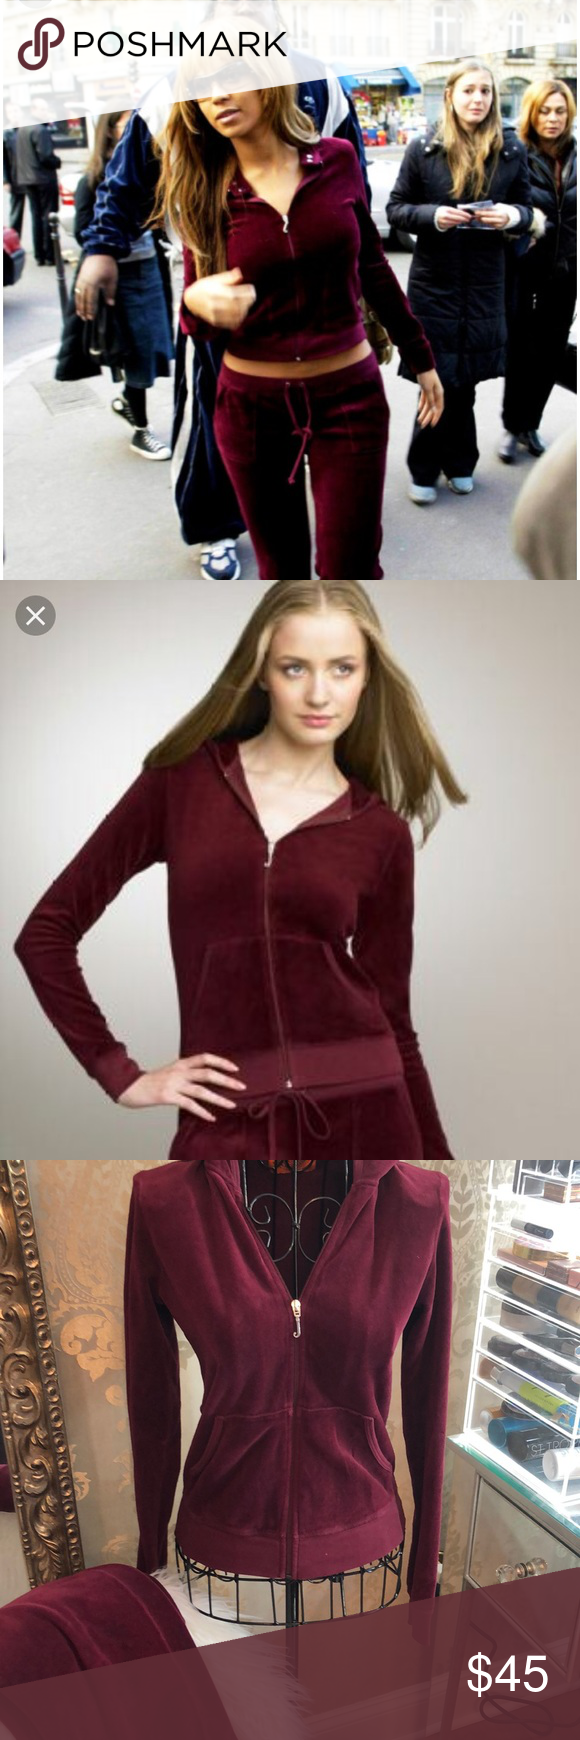 9fe85627dff7 Juicy Couture tracksuit Preloved Juicy Couture tracksuit in gorgeous  burgundy! Size small top and petite